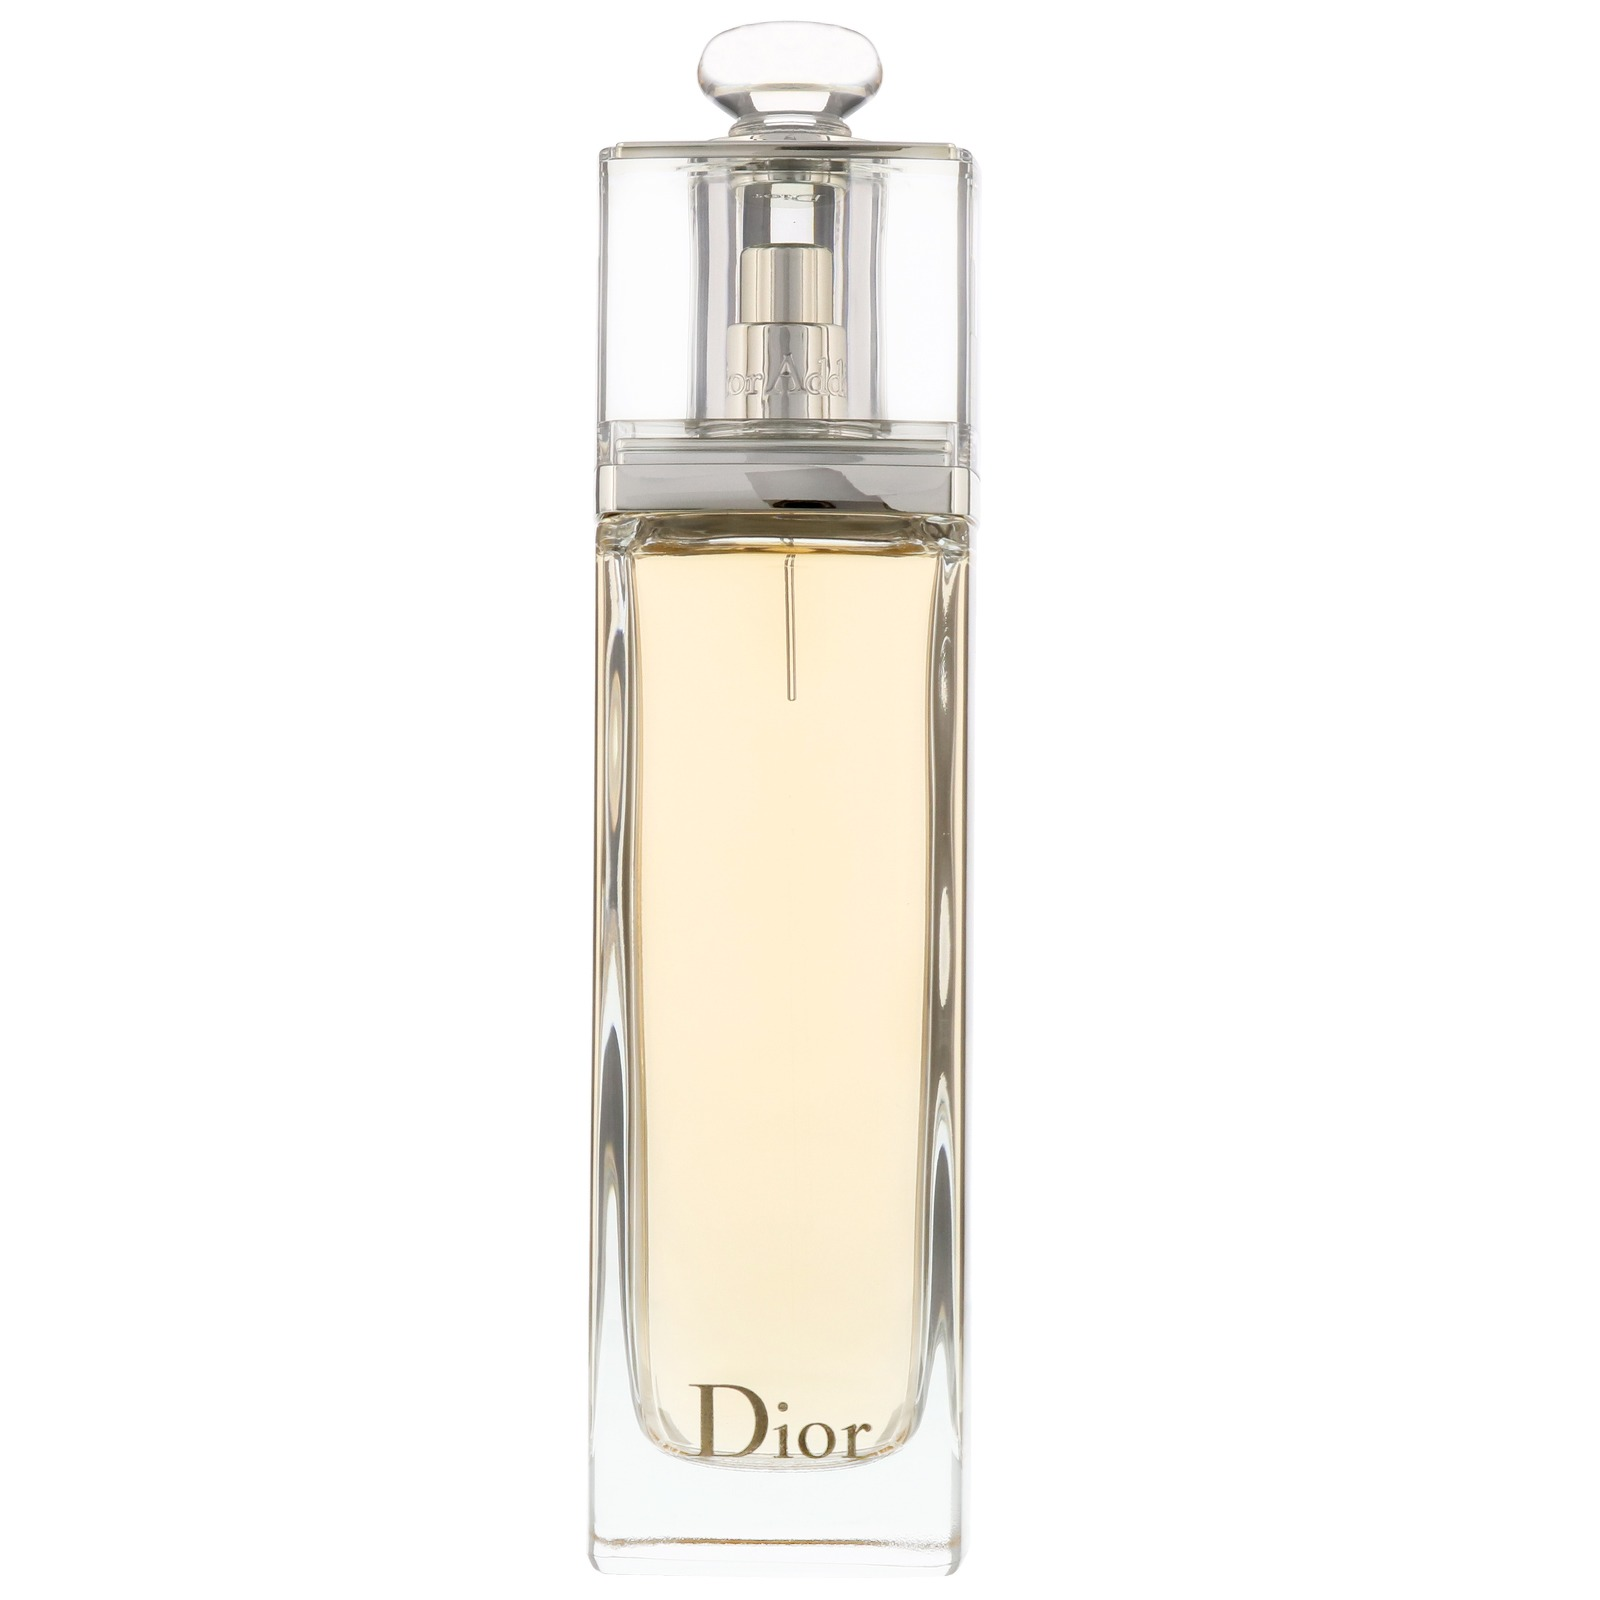 Dior Addict Eau de Toilette Spray 100ml